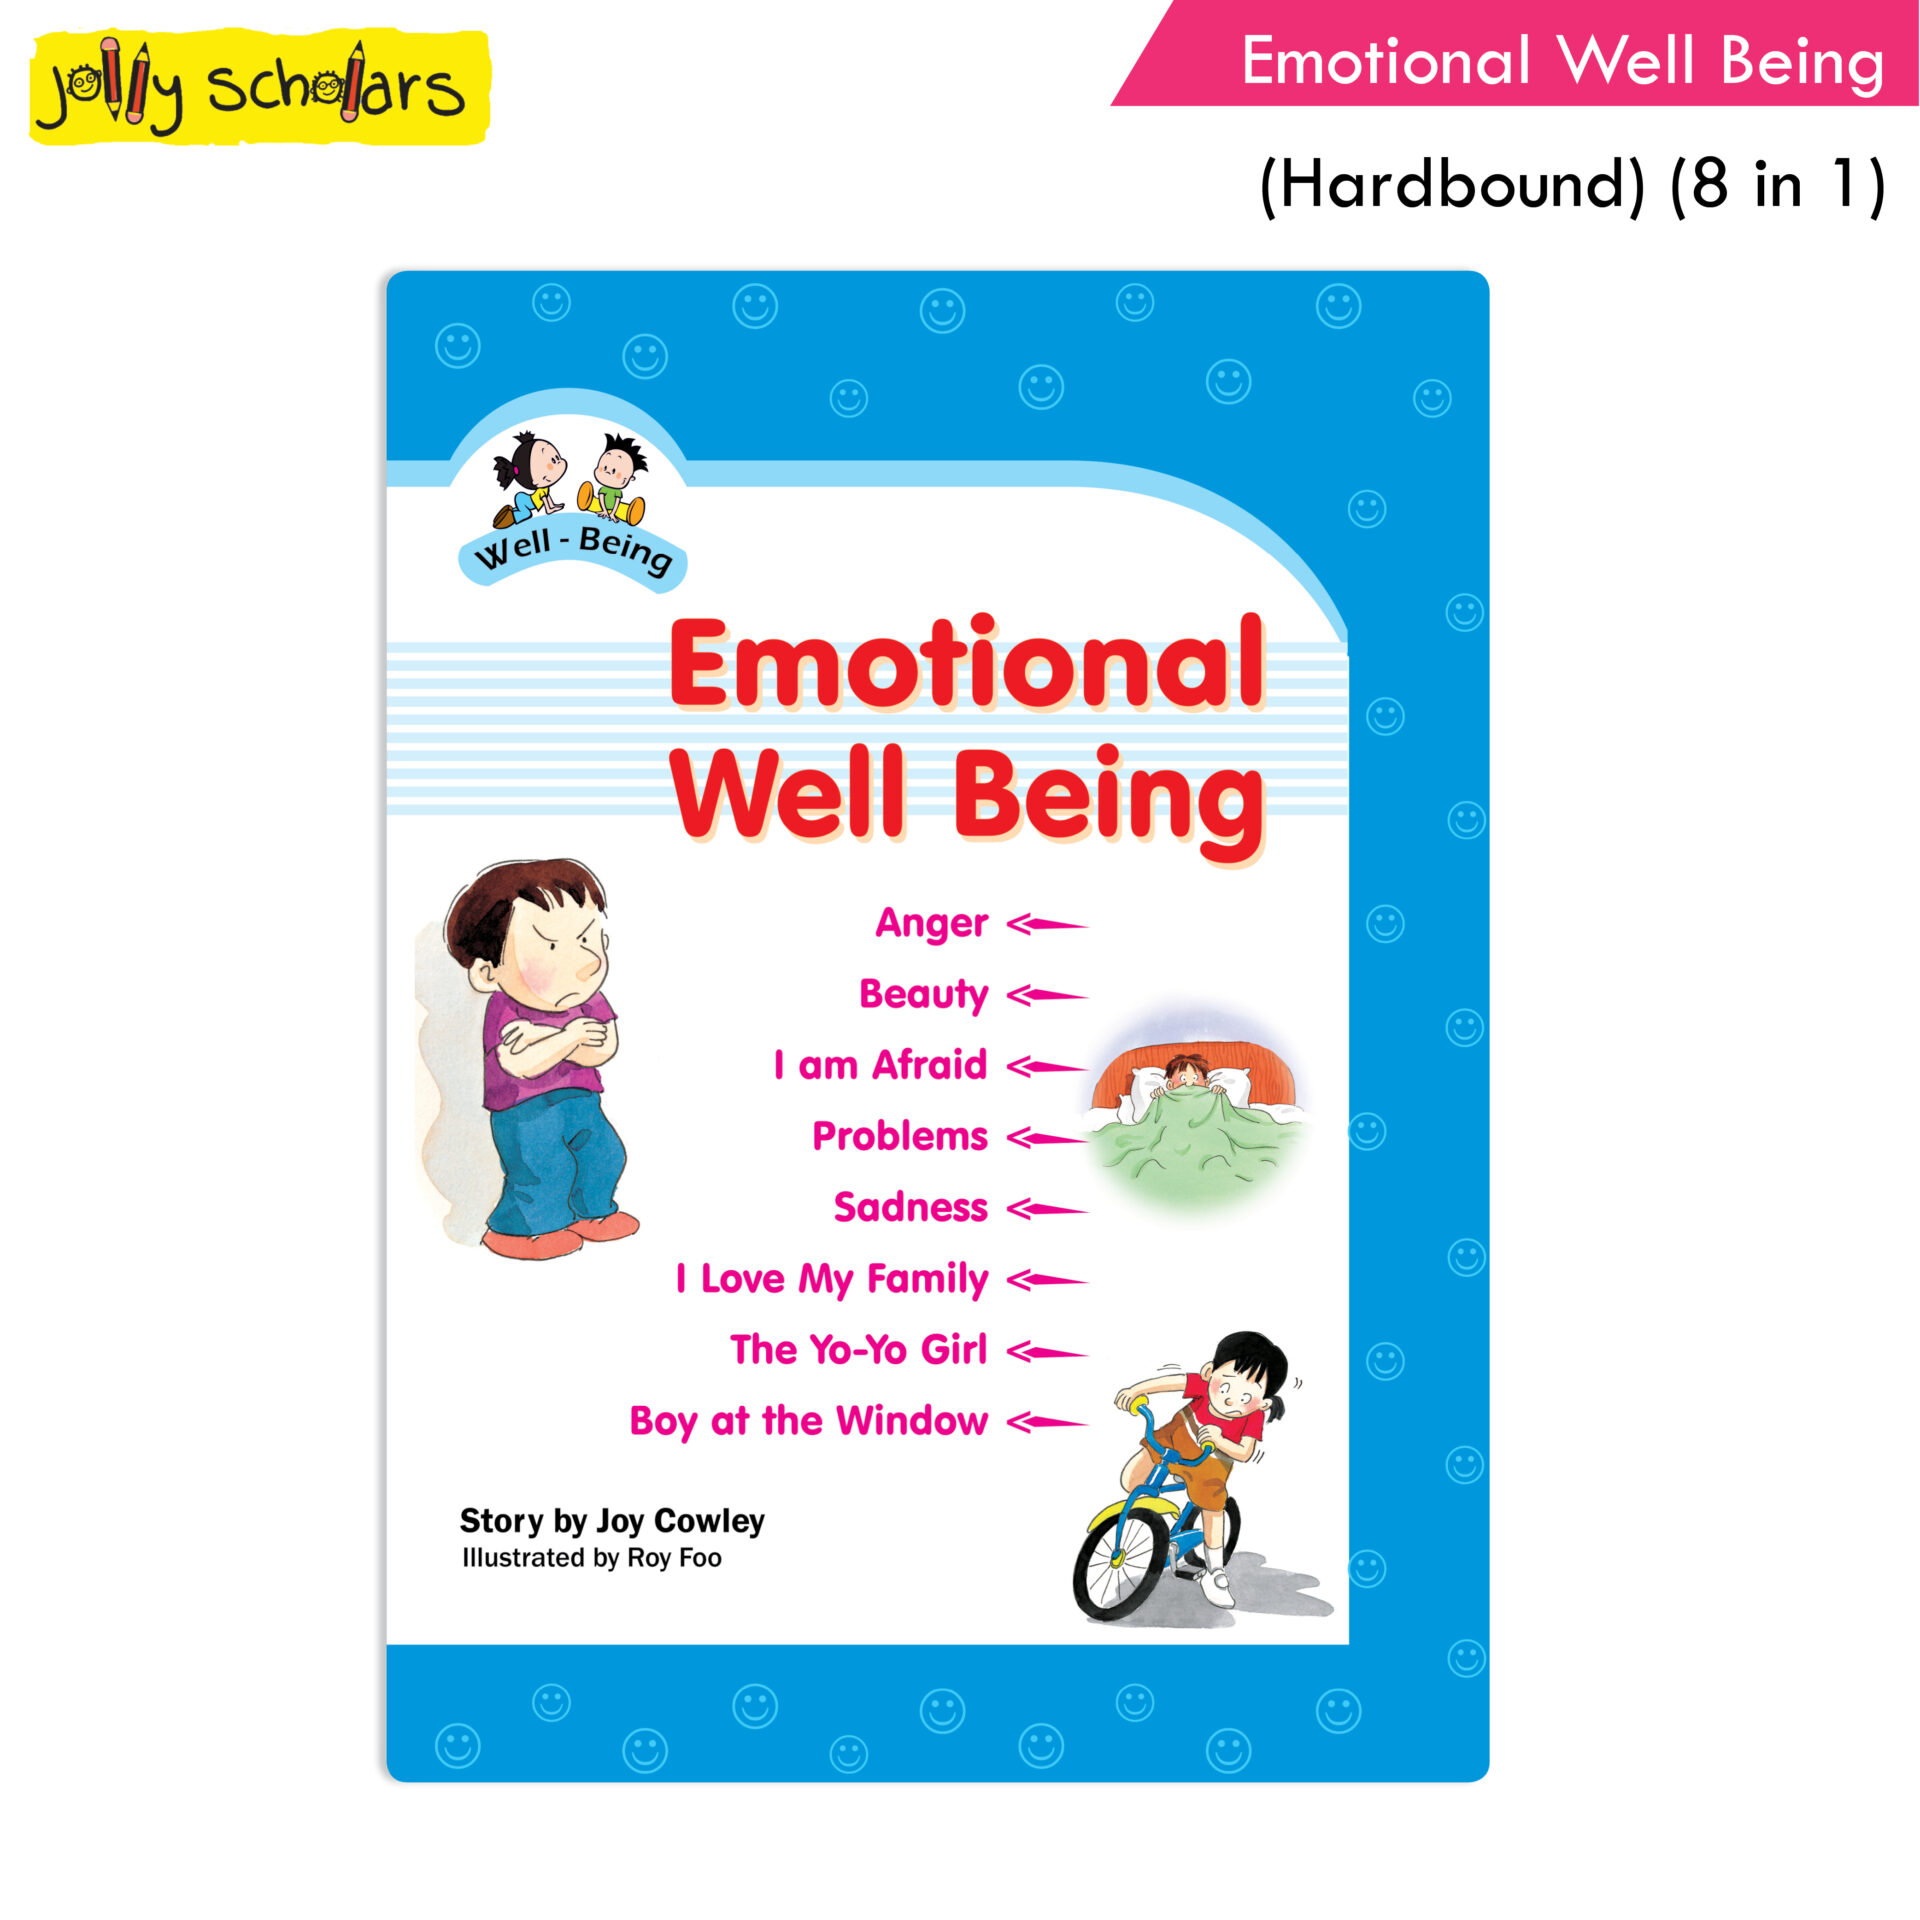 Jolly Scholars Emotional Well Being Hard Bound 8 in 1 1